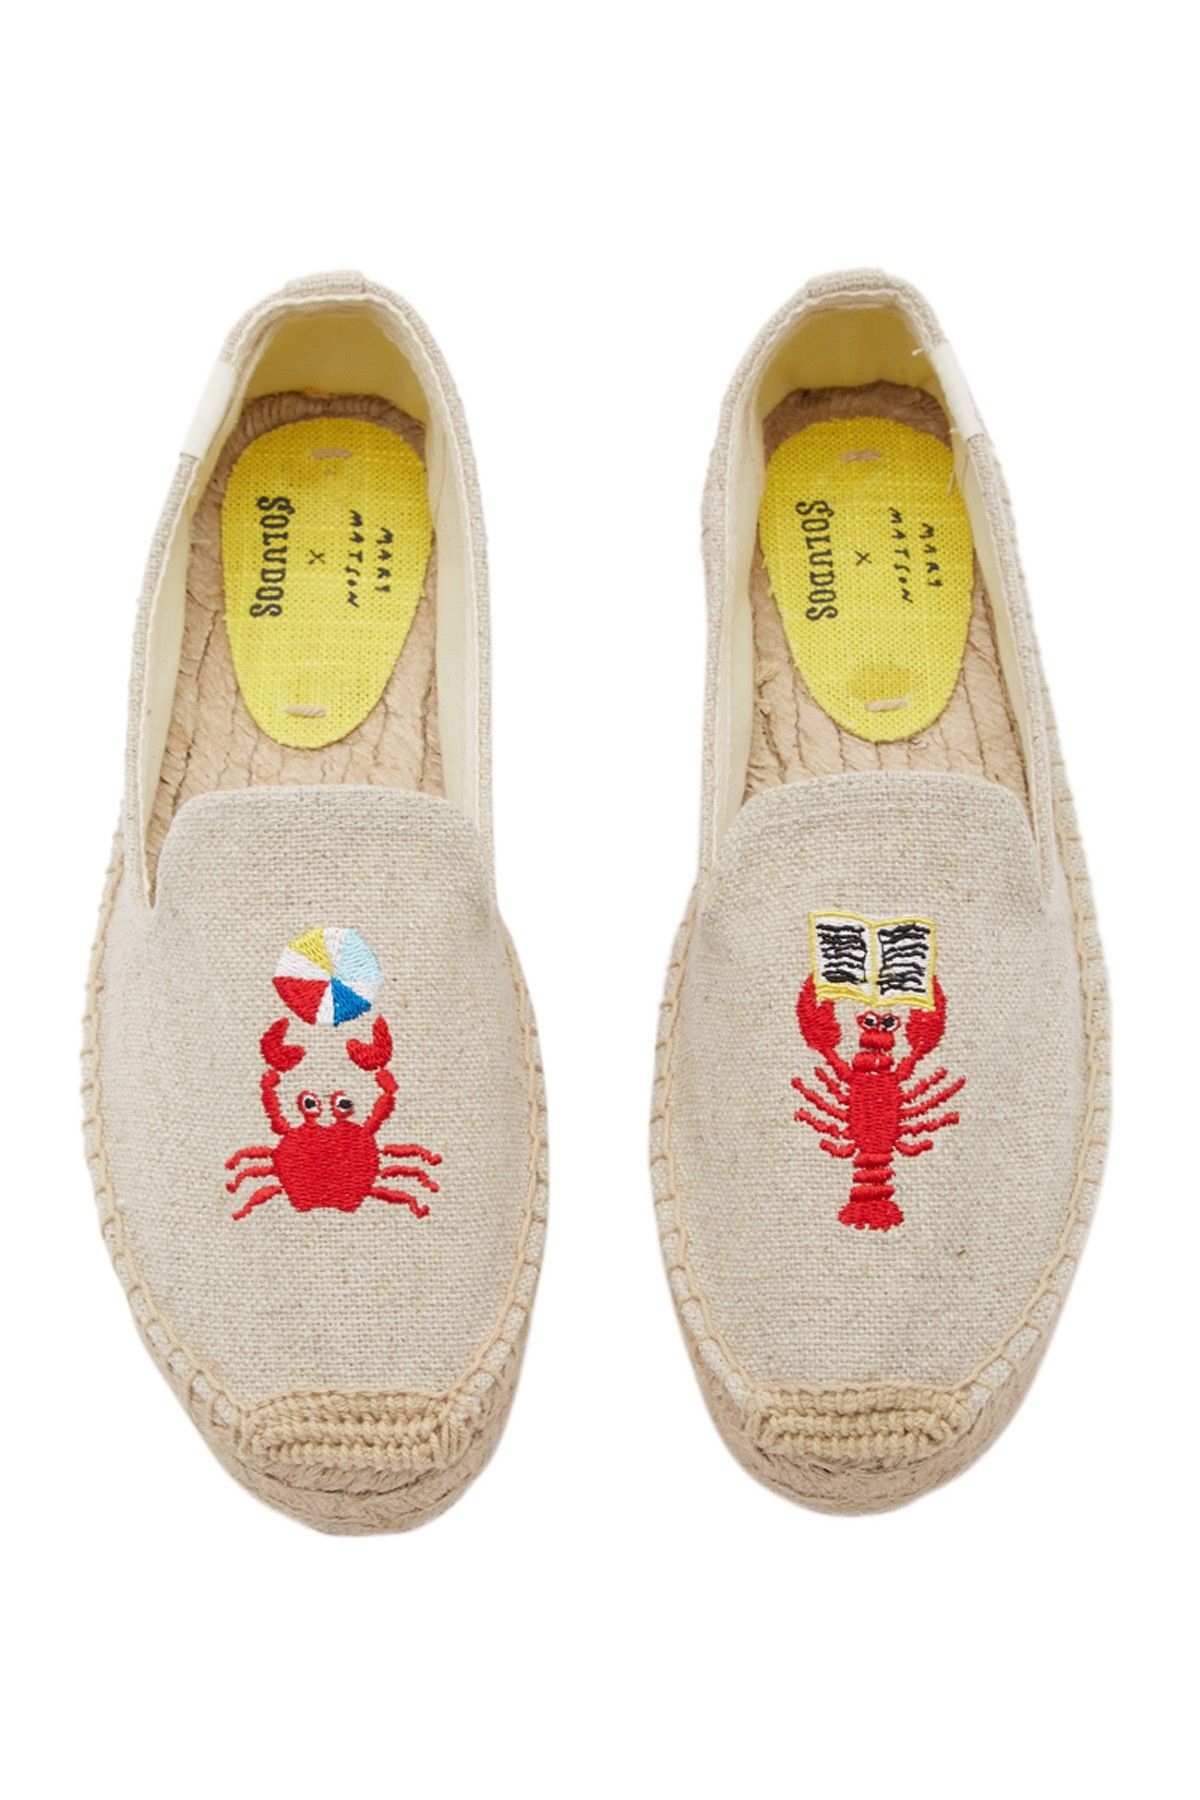 0ab61c22ccea Mary Matson Lobster   Crab Platform Espadrille Flat by Soludos on  HauteLook